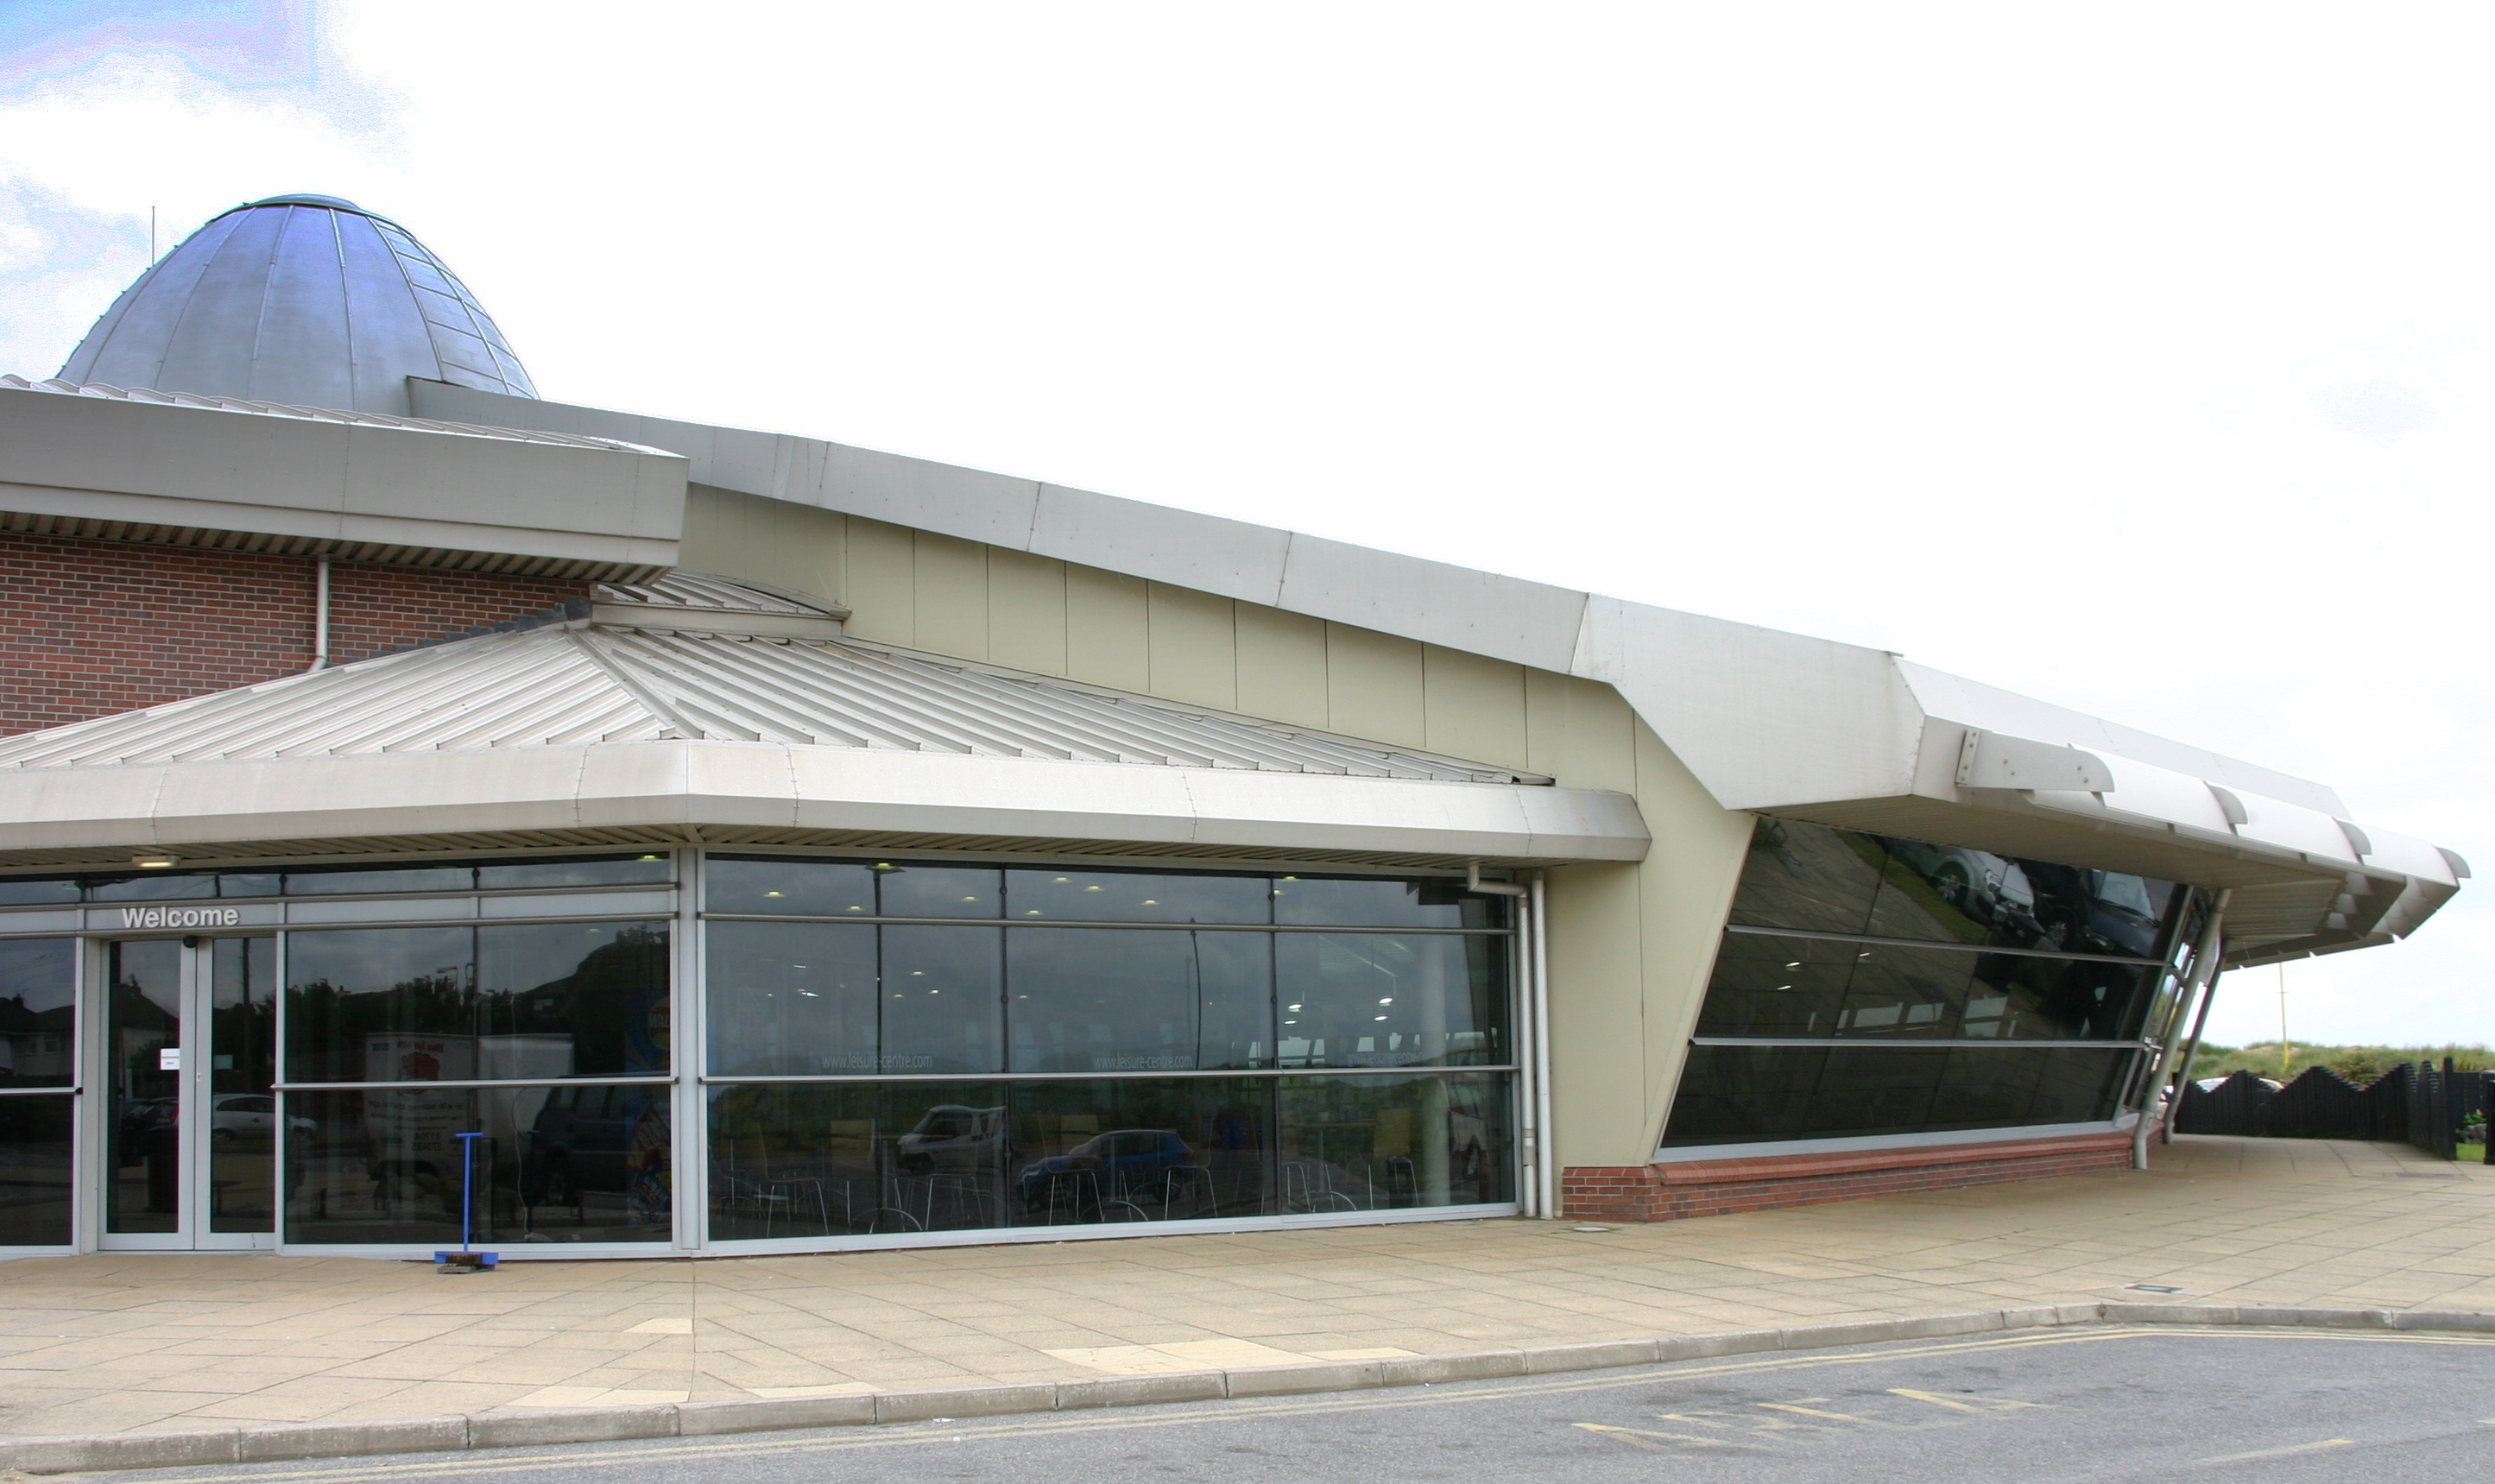 Crosby Leisure Centre, Liverpool, Merseyside